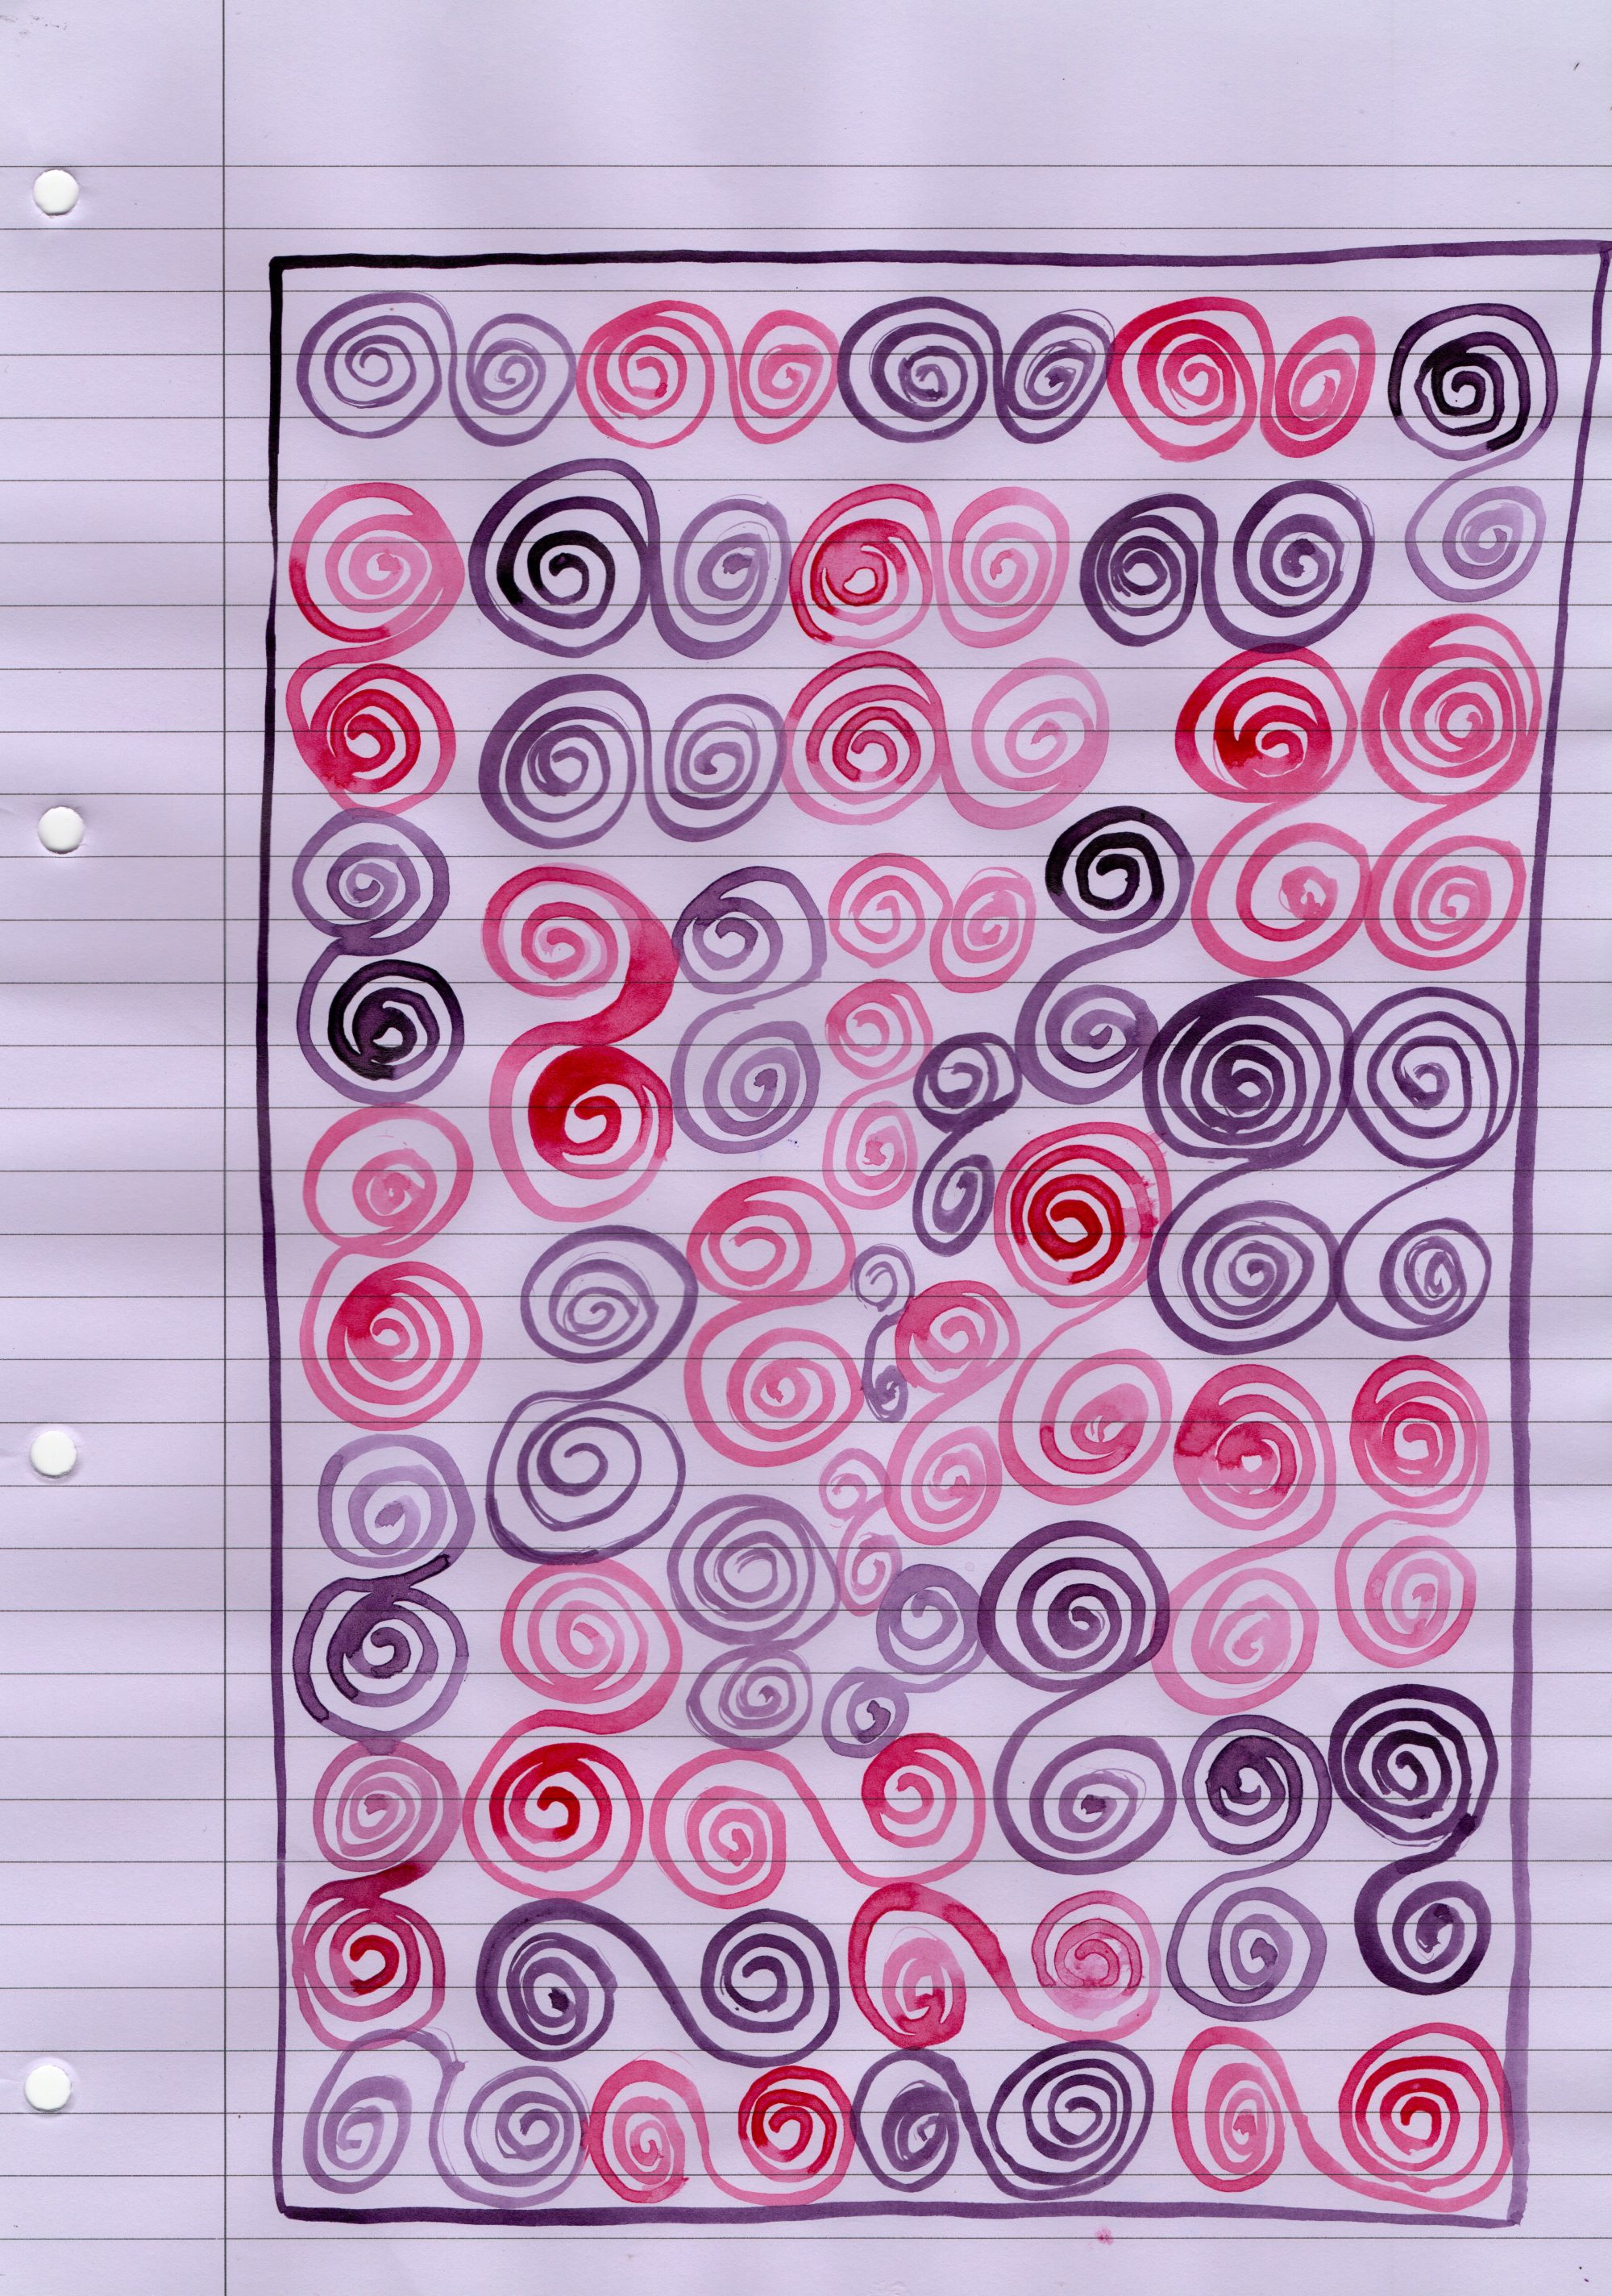 A sheet of lilac lined office paper, leaving the margin clear, is filled with a multicoloured pen drawing of nearly 100 small spirals in pinks, purples and reds. Each spiral is connected to one other, making it a drawing of spiral pairs. A single purple line in ink surrounds the spirals, running parallel with the page margin.